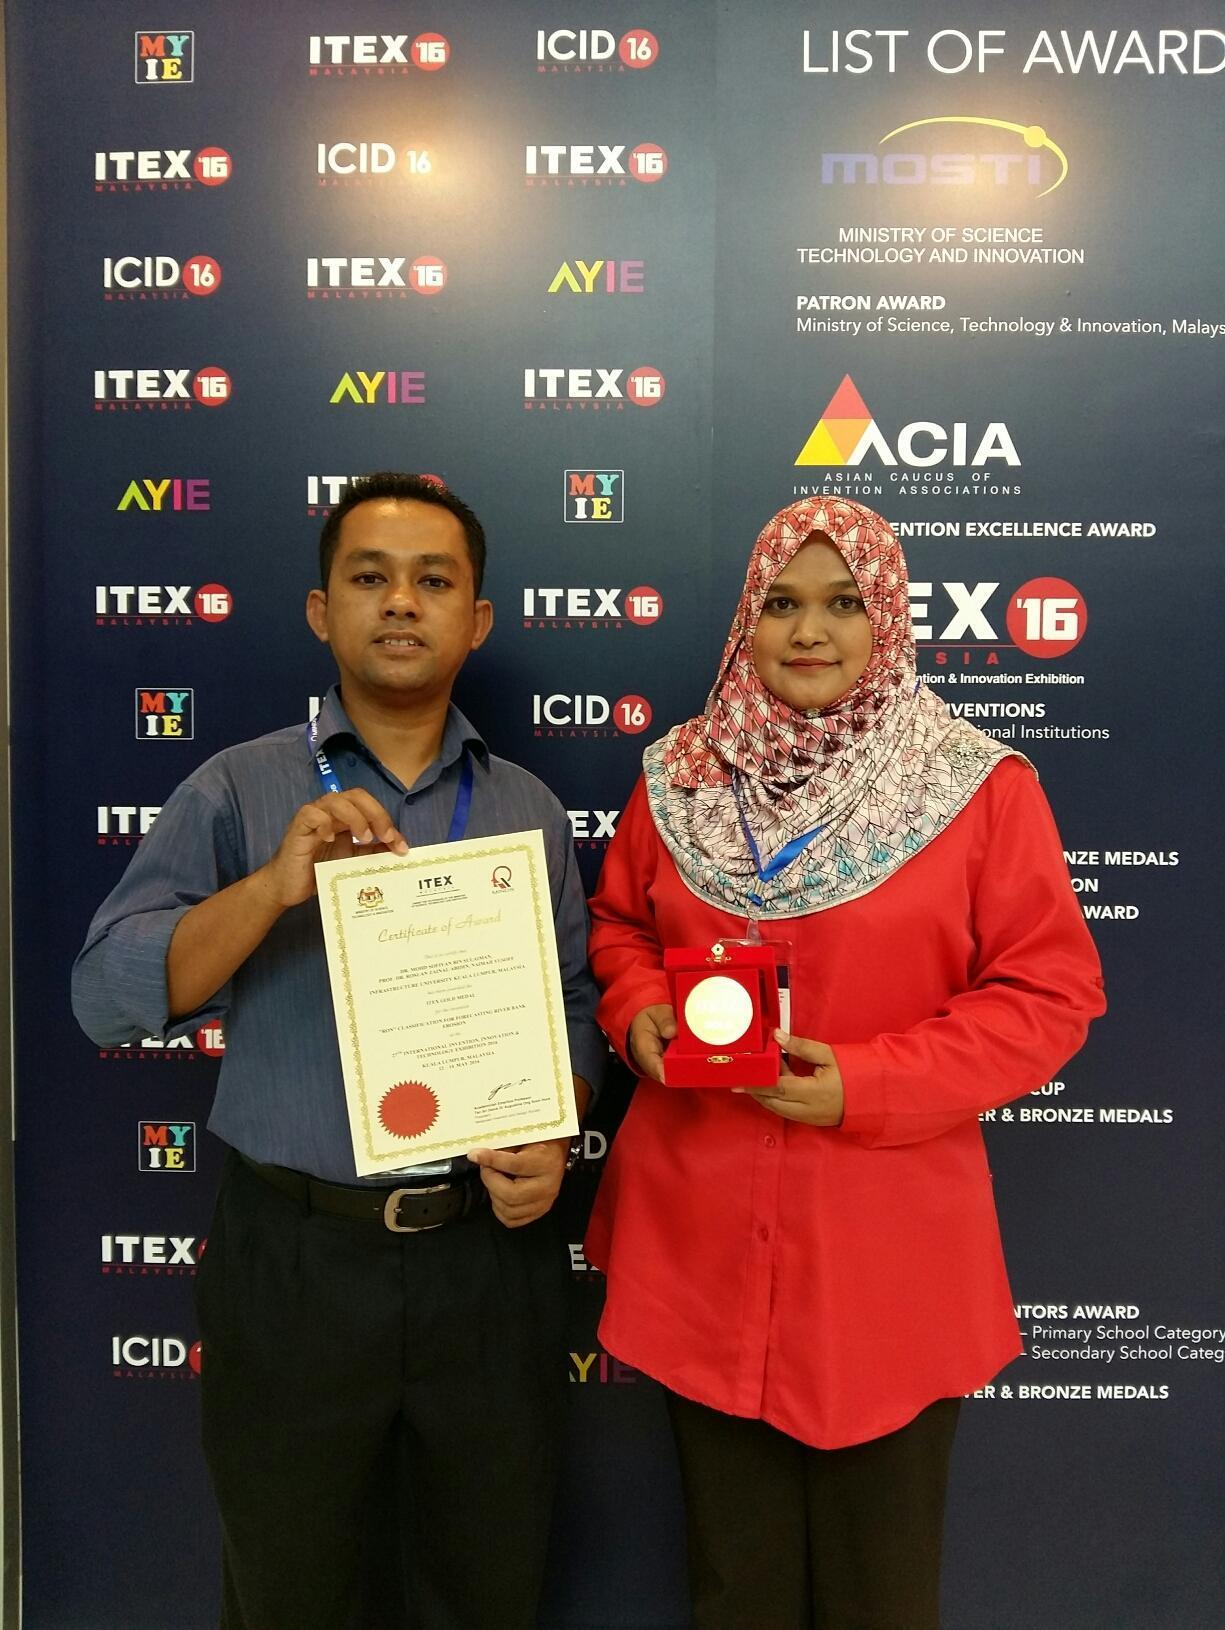 GOLD AWARD @ International Invention, Innovation and Technology Exhibition 2016 (ITEX 2016)